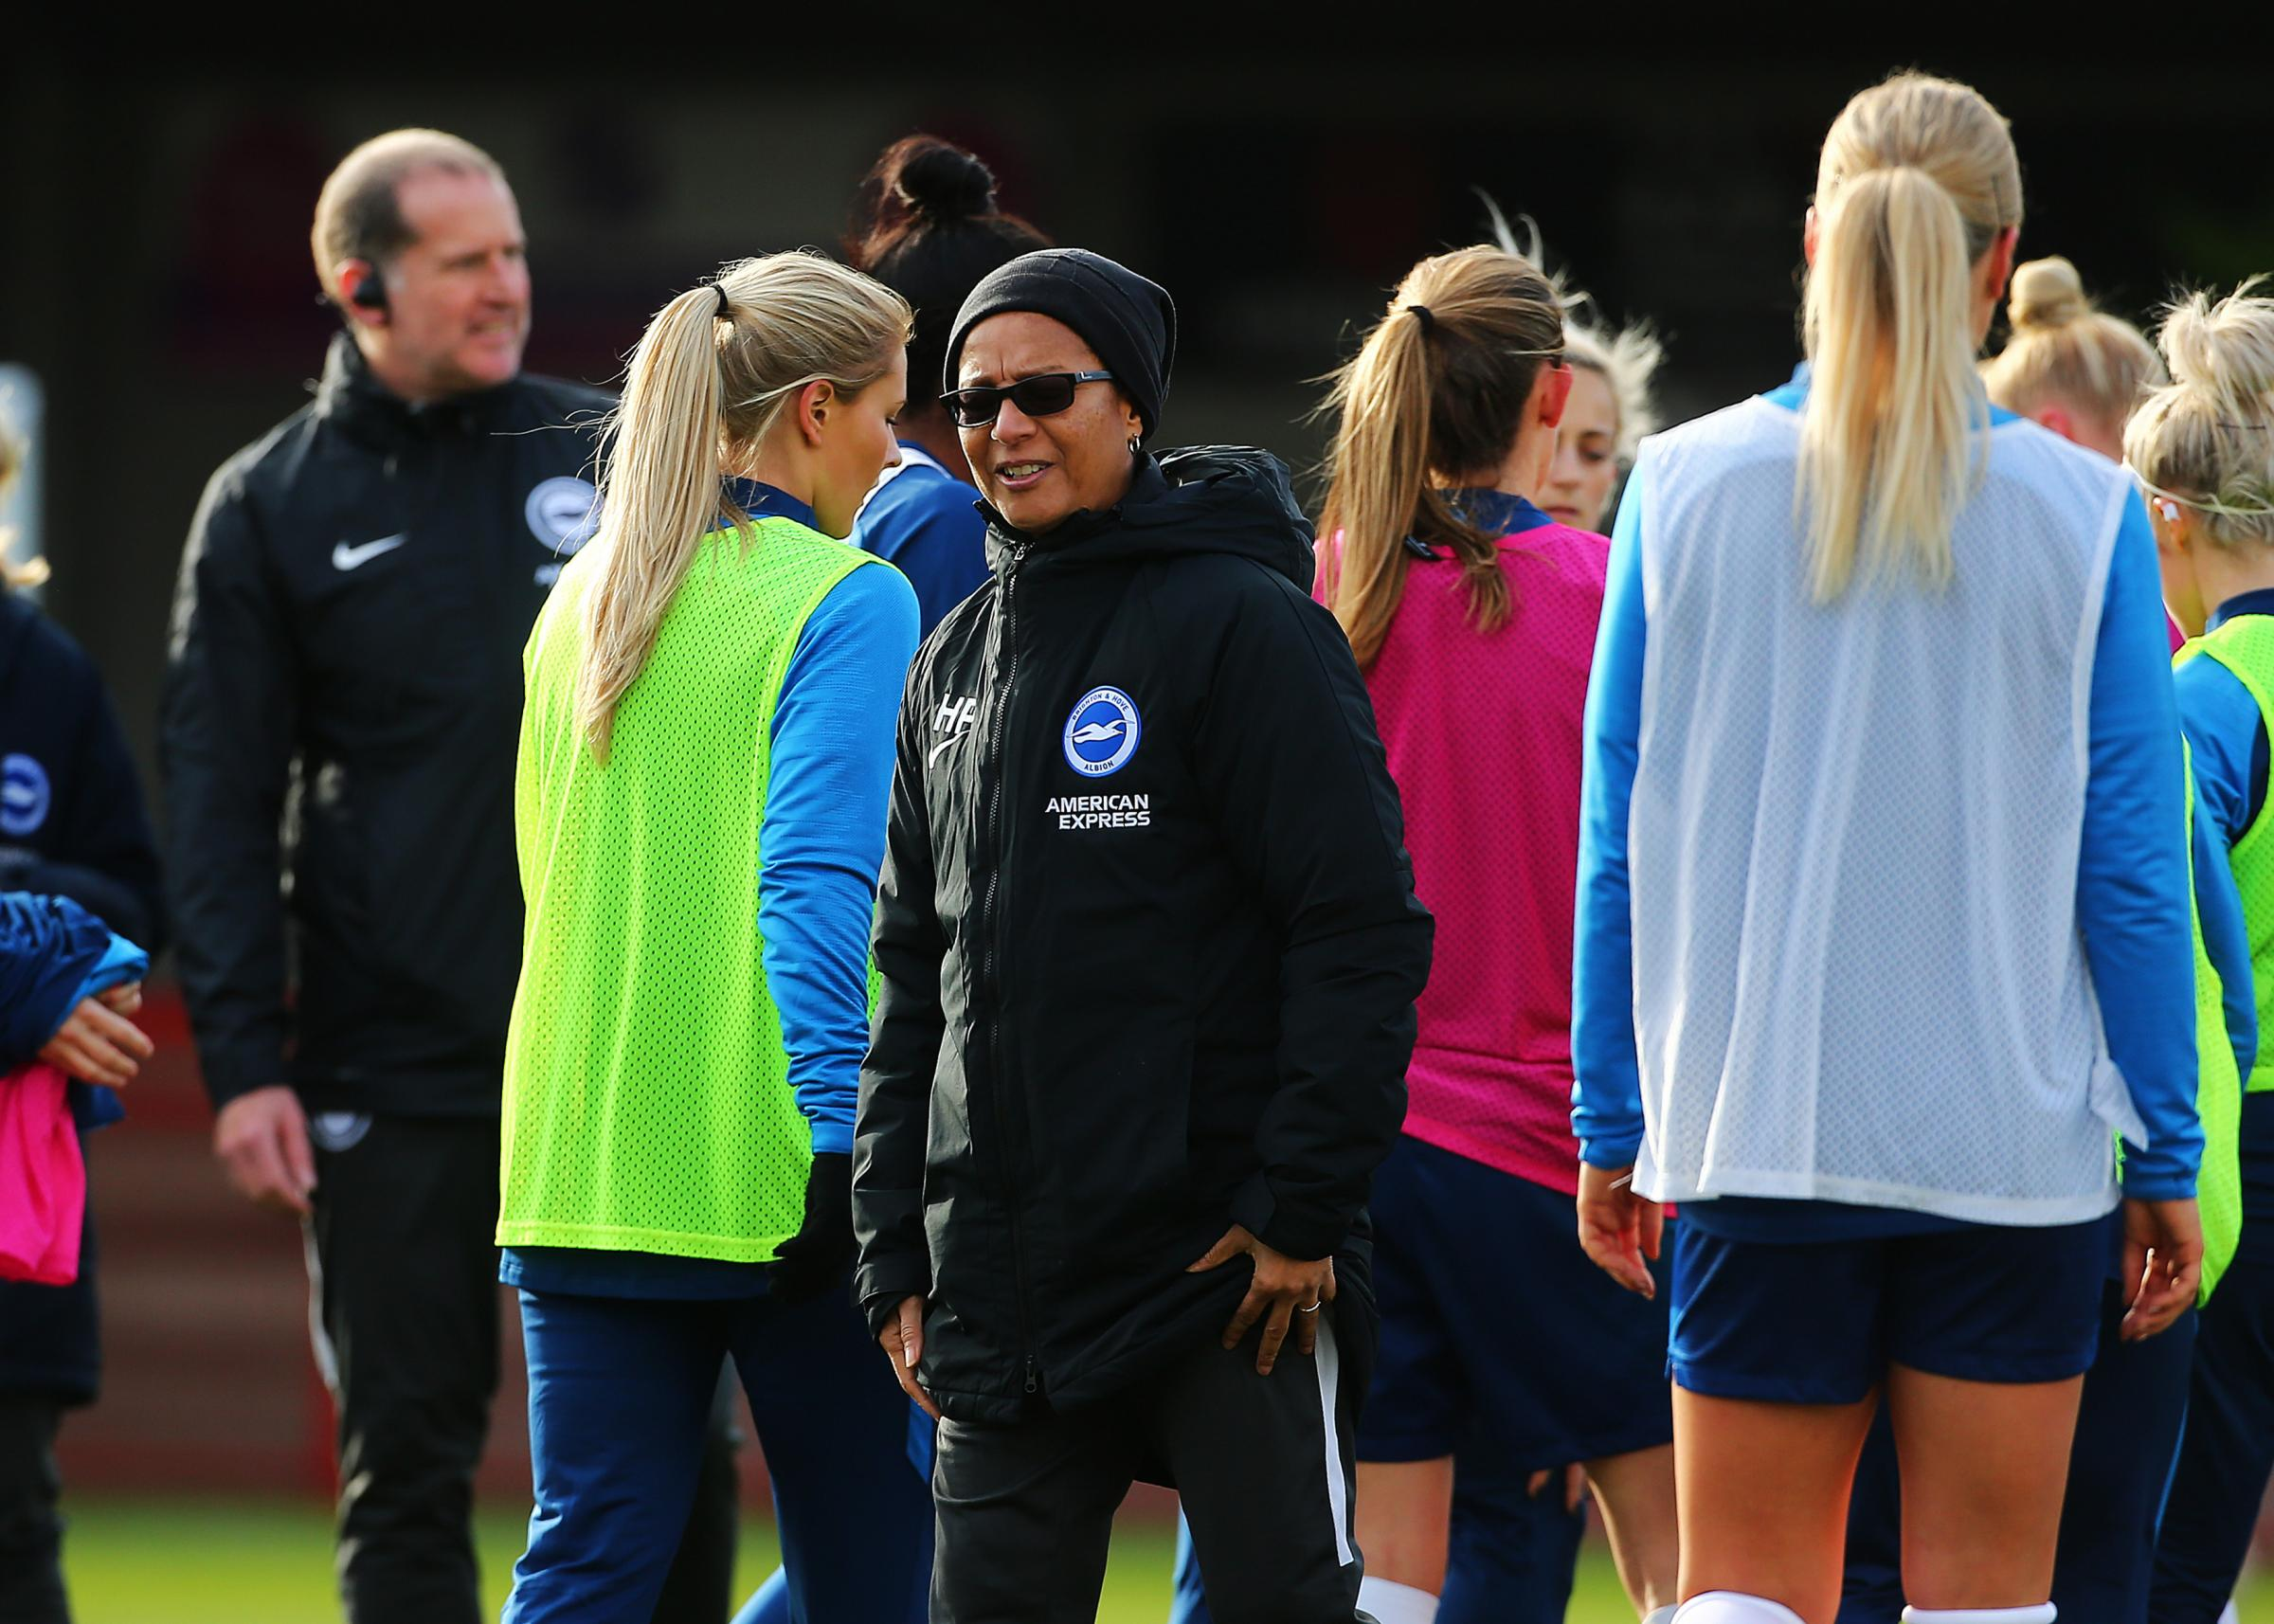 Hope Powell says Albion will take cup run game by game